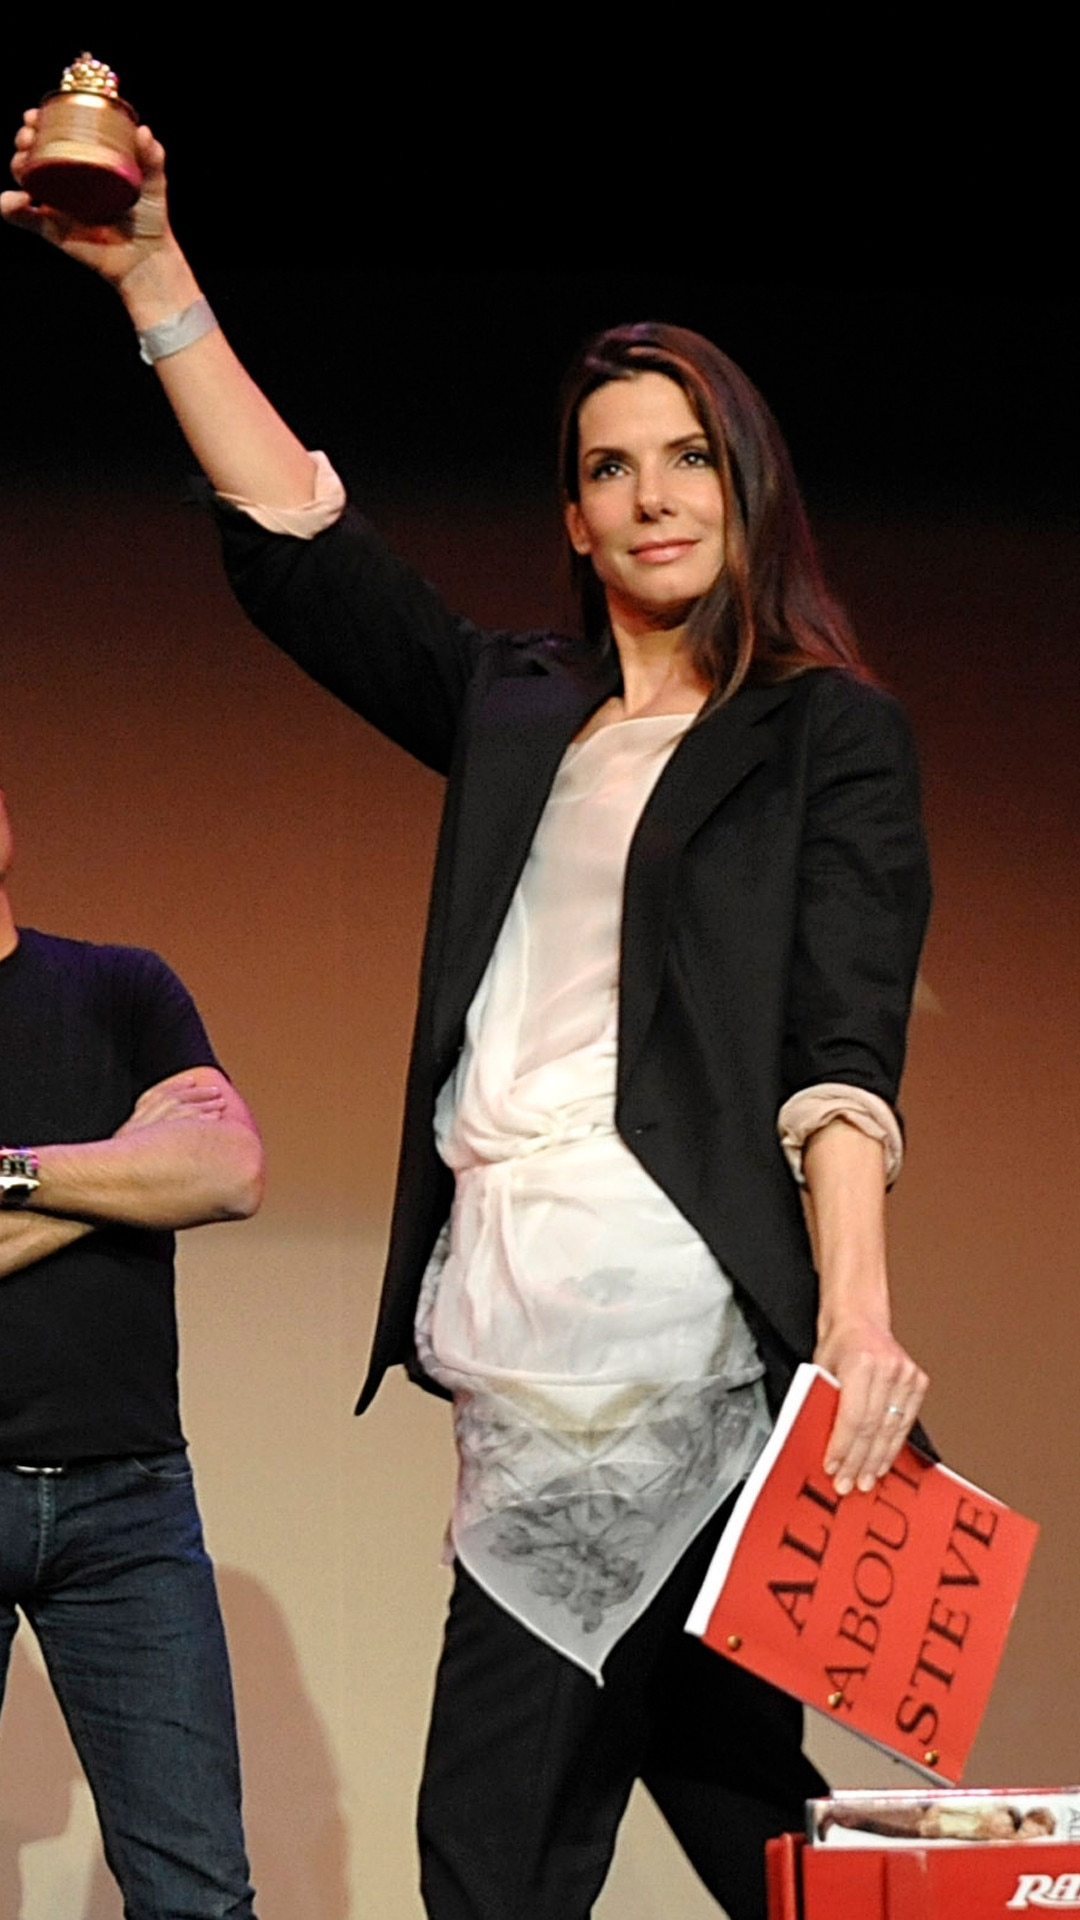 Sandra Bullock, 2010 -  One of Hollywood's most beloved actresseswent in person to accept her awards for Worst Actress and Worst Screen Couple for her performance in the film All About Steve. One night later,shewent on to win an Oscar for Best Actressthanks to her role in The Blind Side.